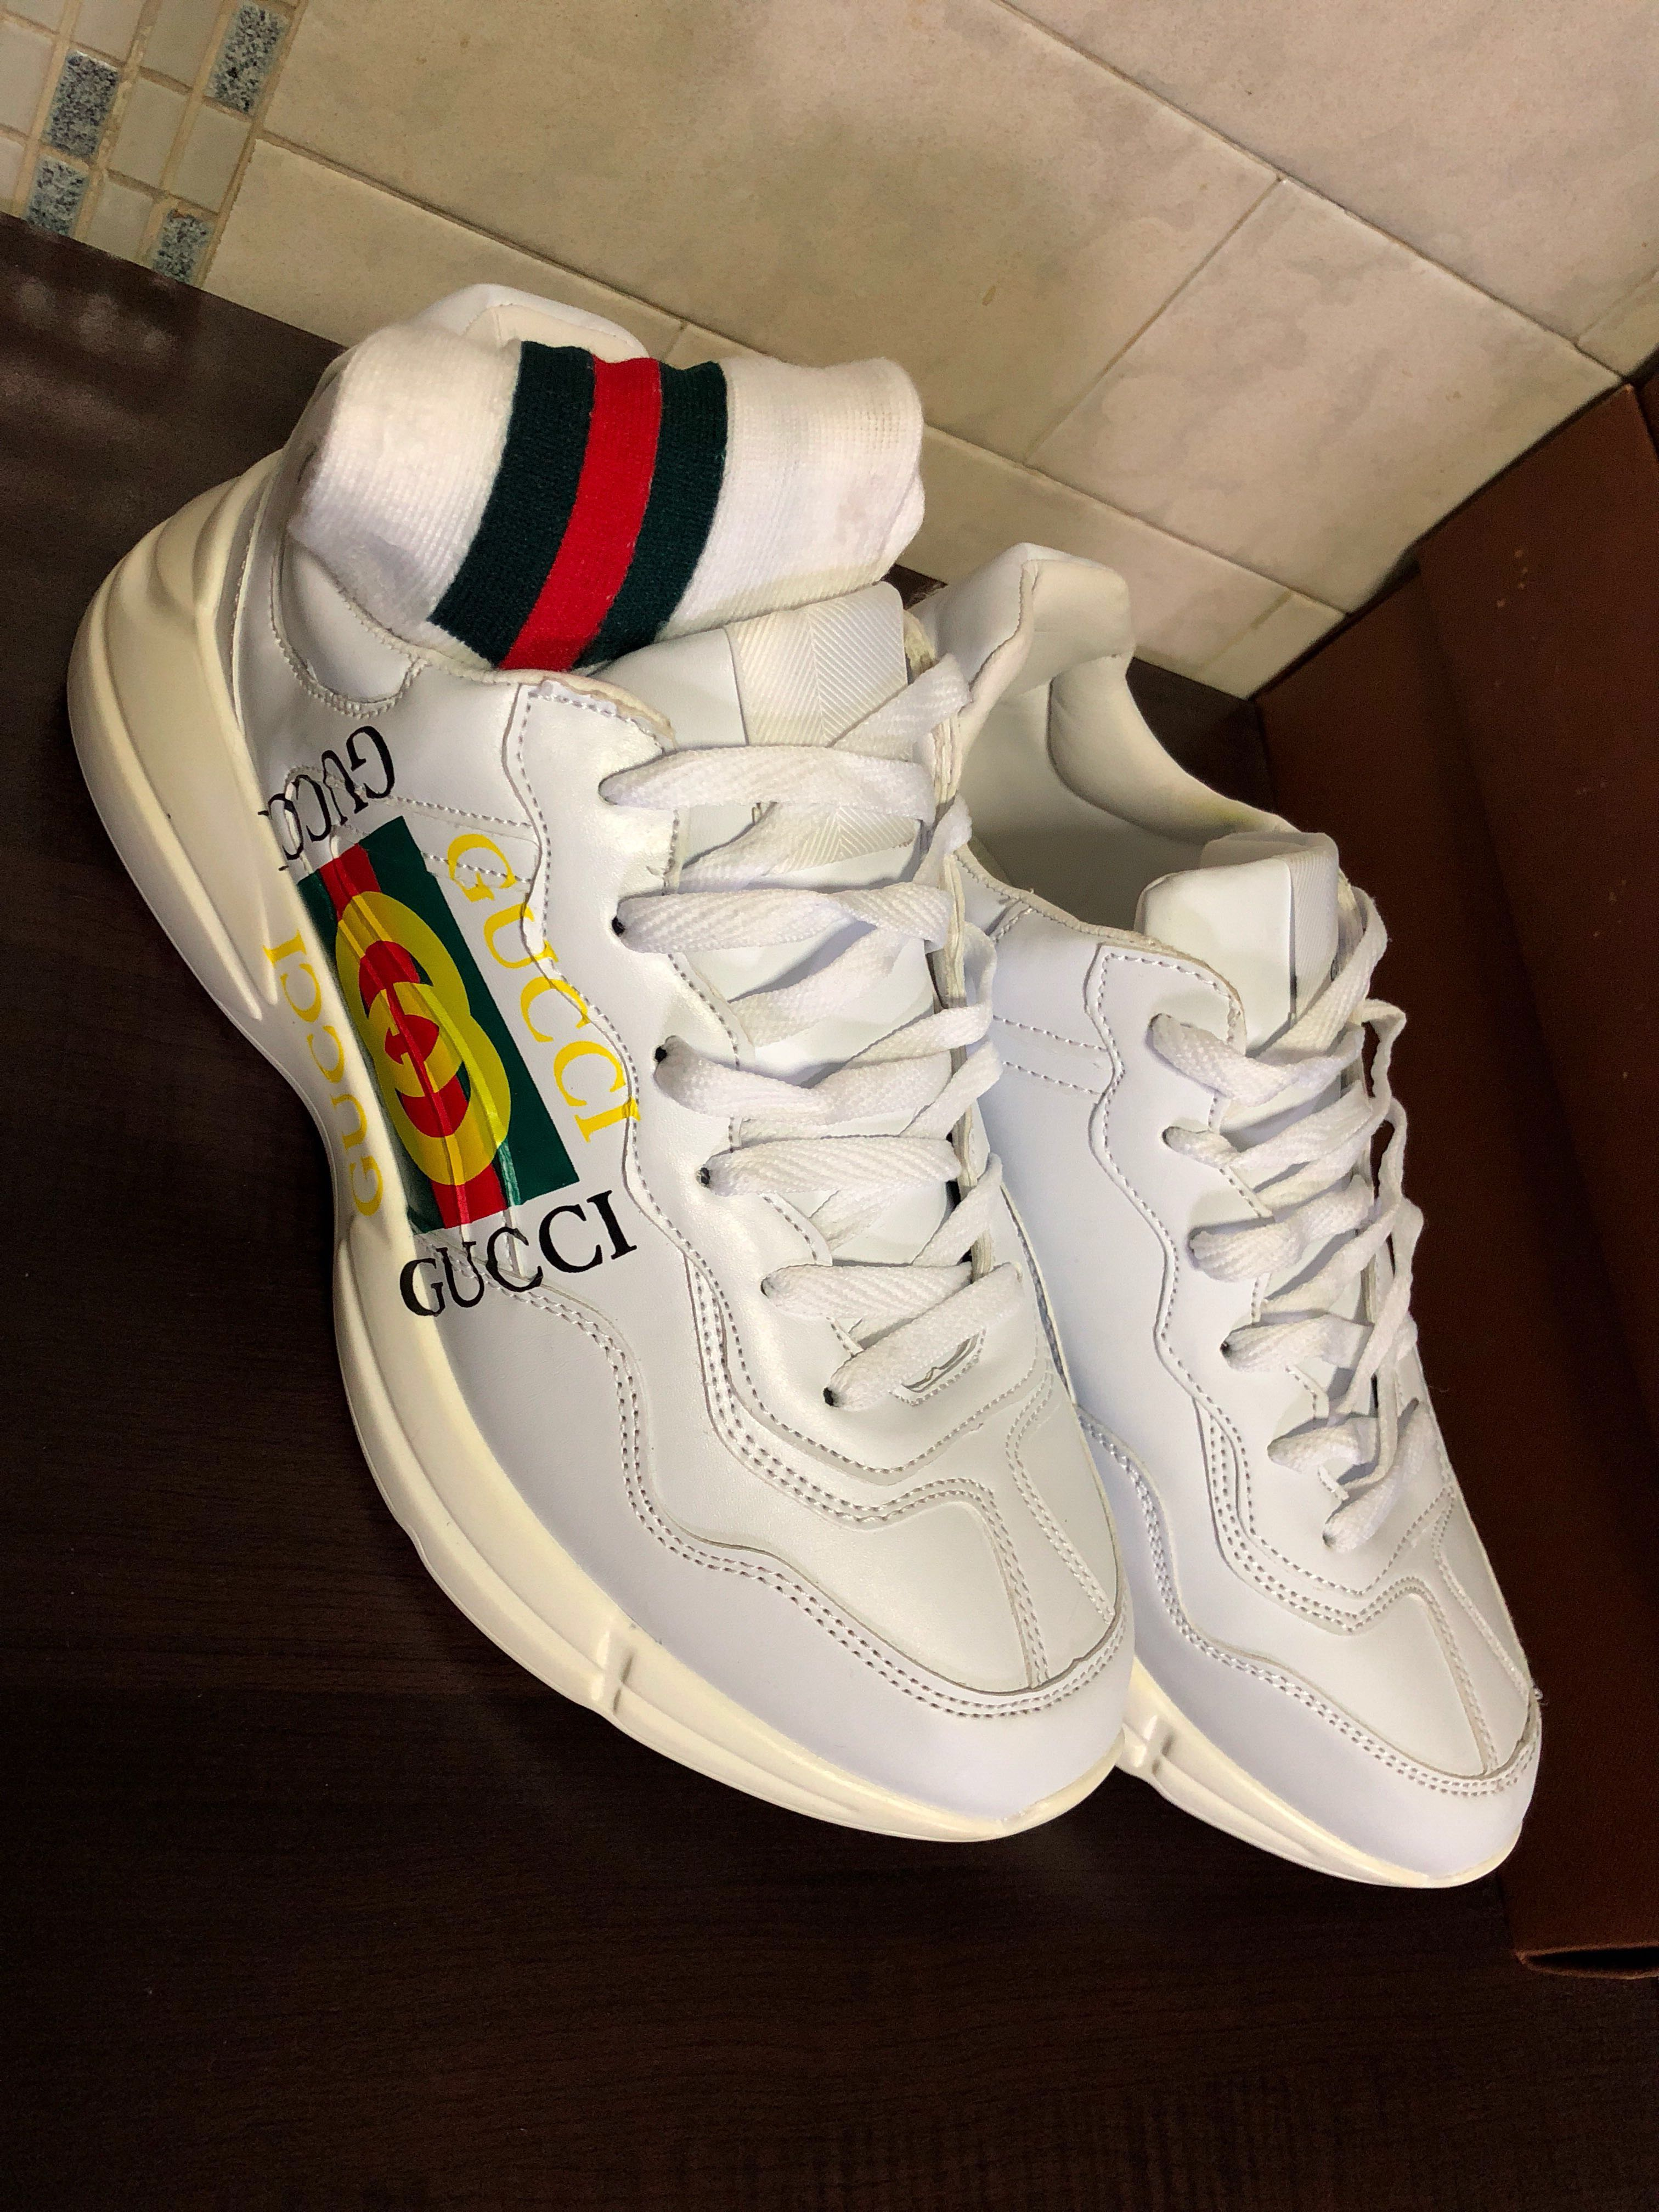 7d8514d1c79 USED) Gucci Rhyton Chunky Sneakers